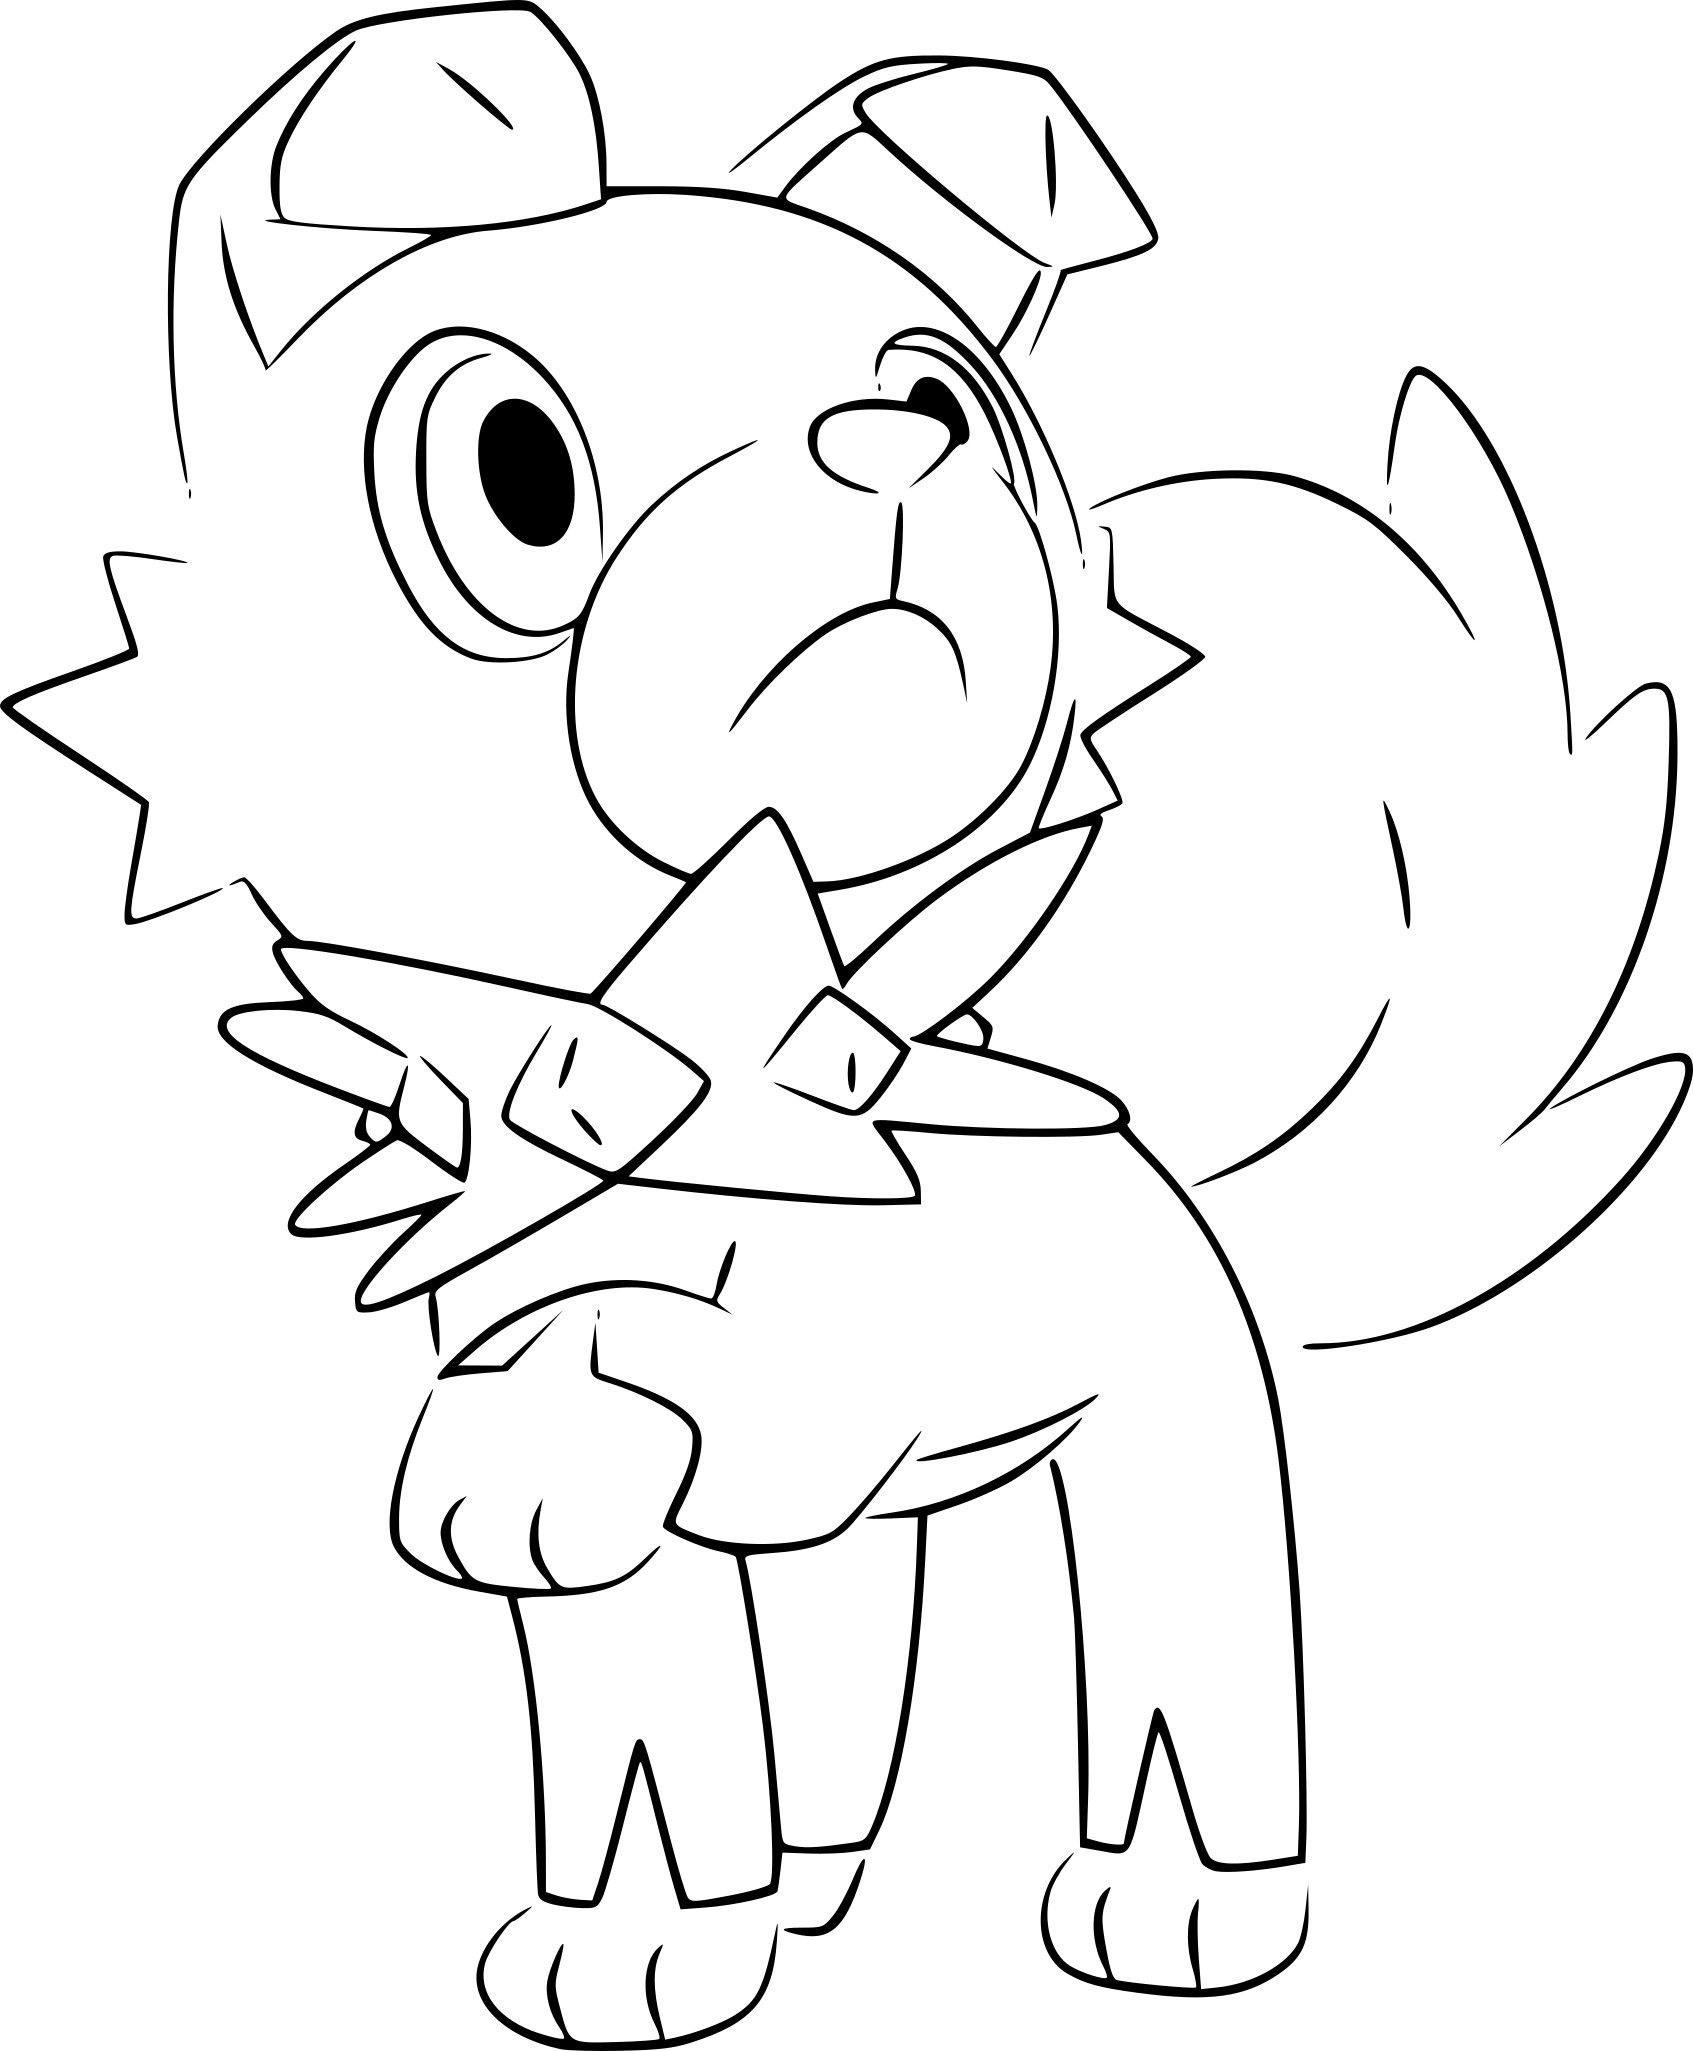 Pokemon Rockruff Coloring Pages Through The Thousand Pictures On The Net Concerning Pokemon Ro Pokemon Coloring Pages Pokemon Coloring Cartoon Coloring Pages